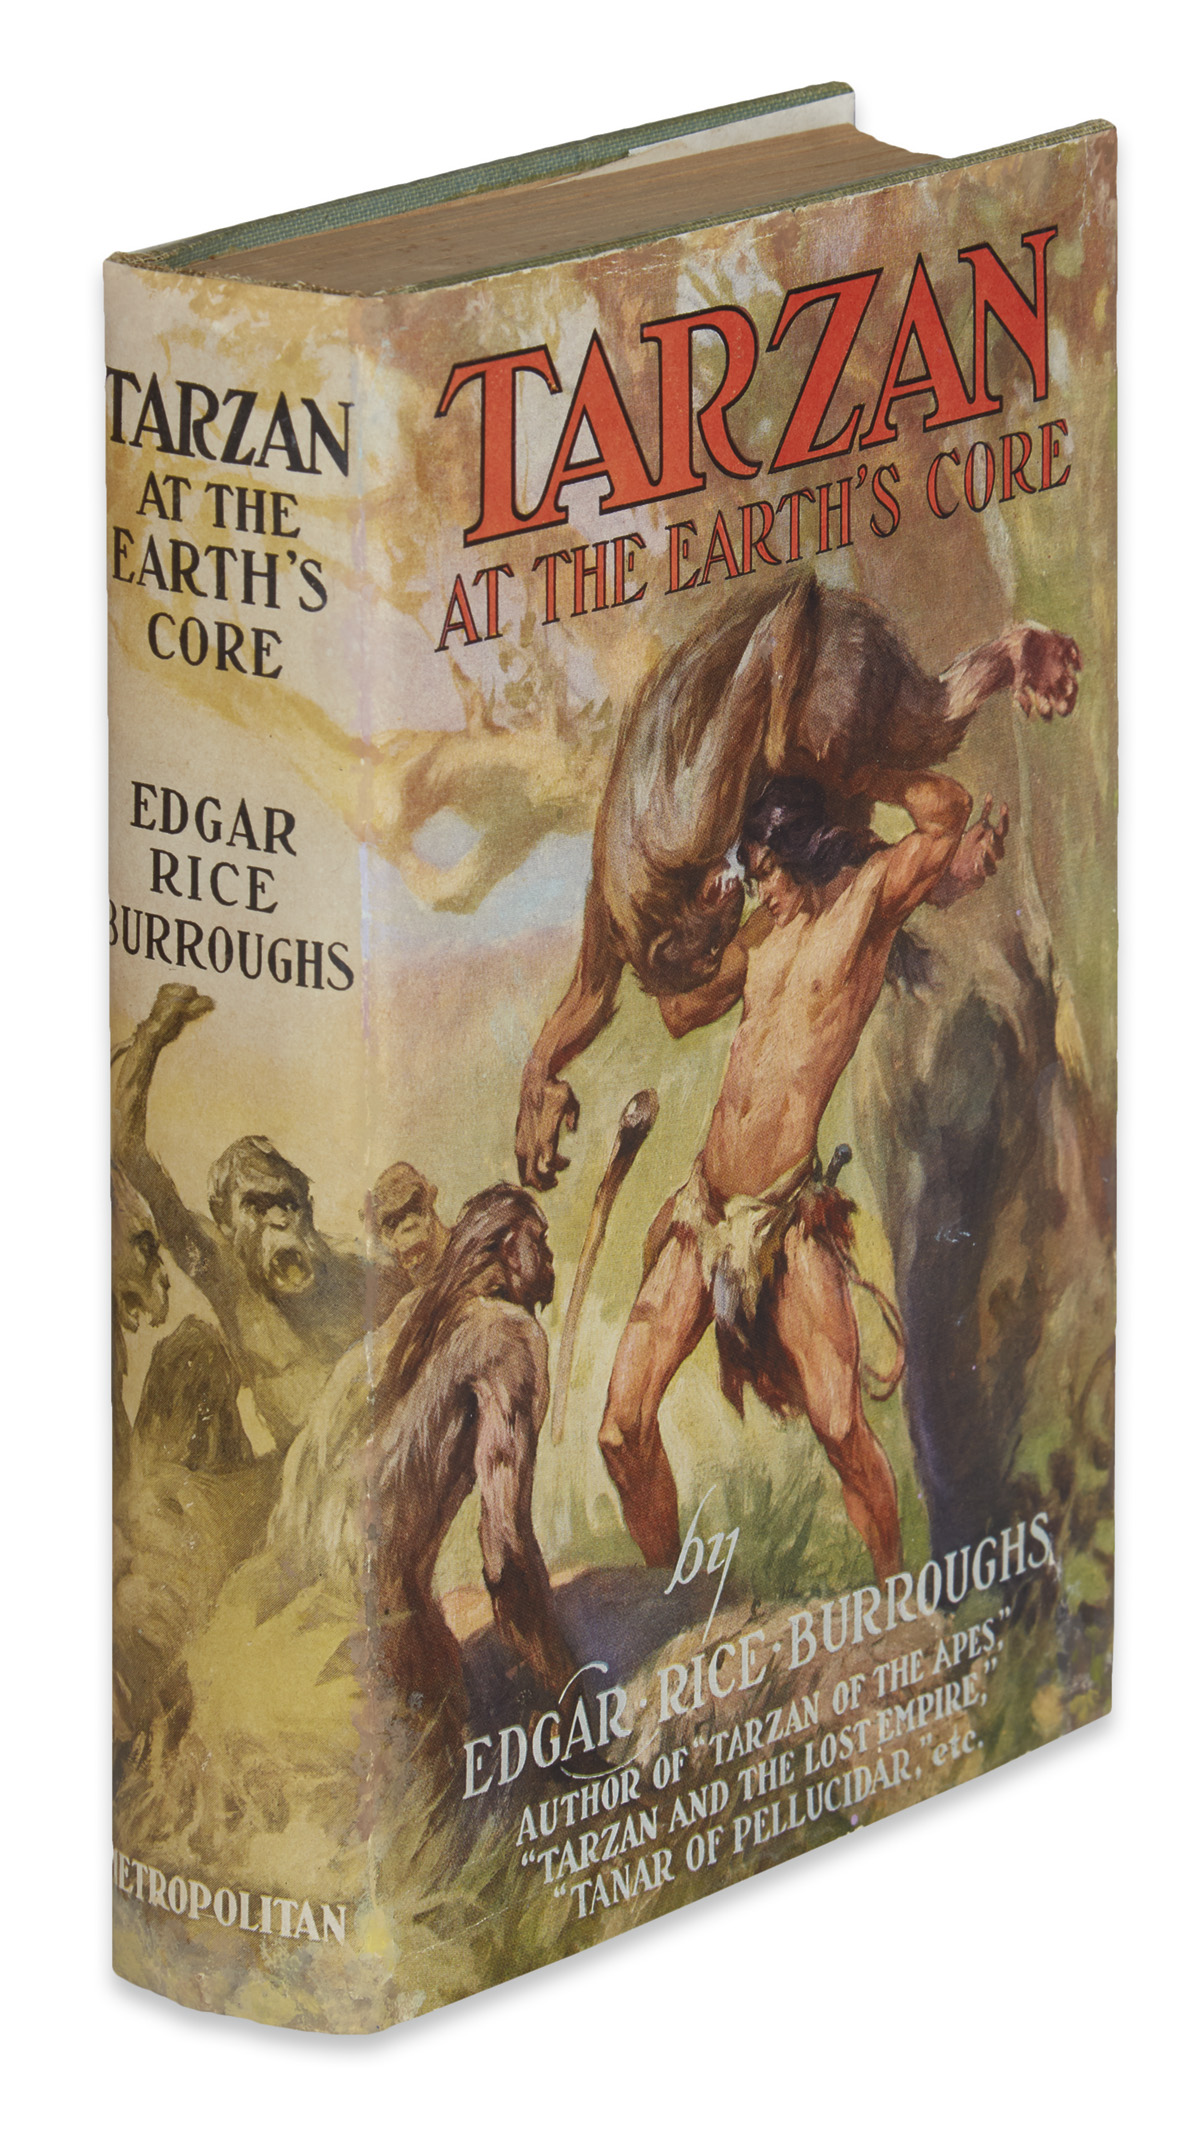 BURROUGHS-EDGAR-RICE-Tarzan-at-the-Earths-Core